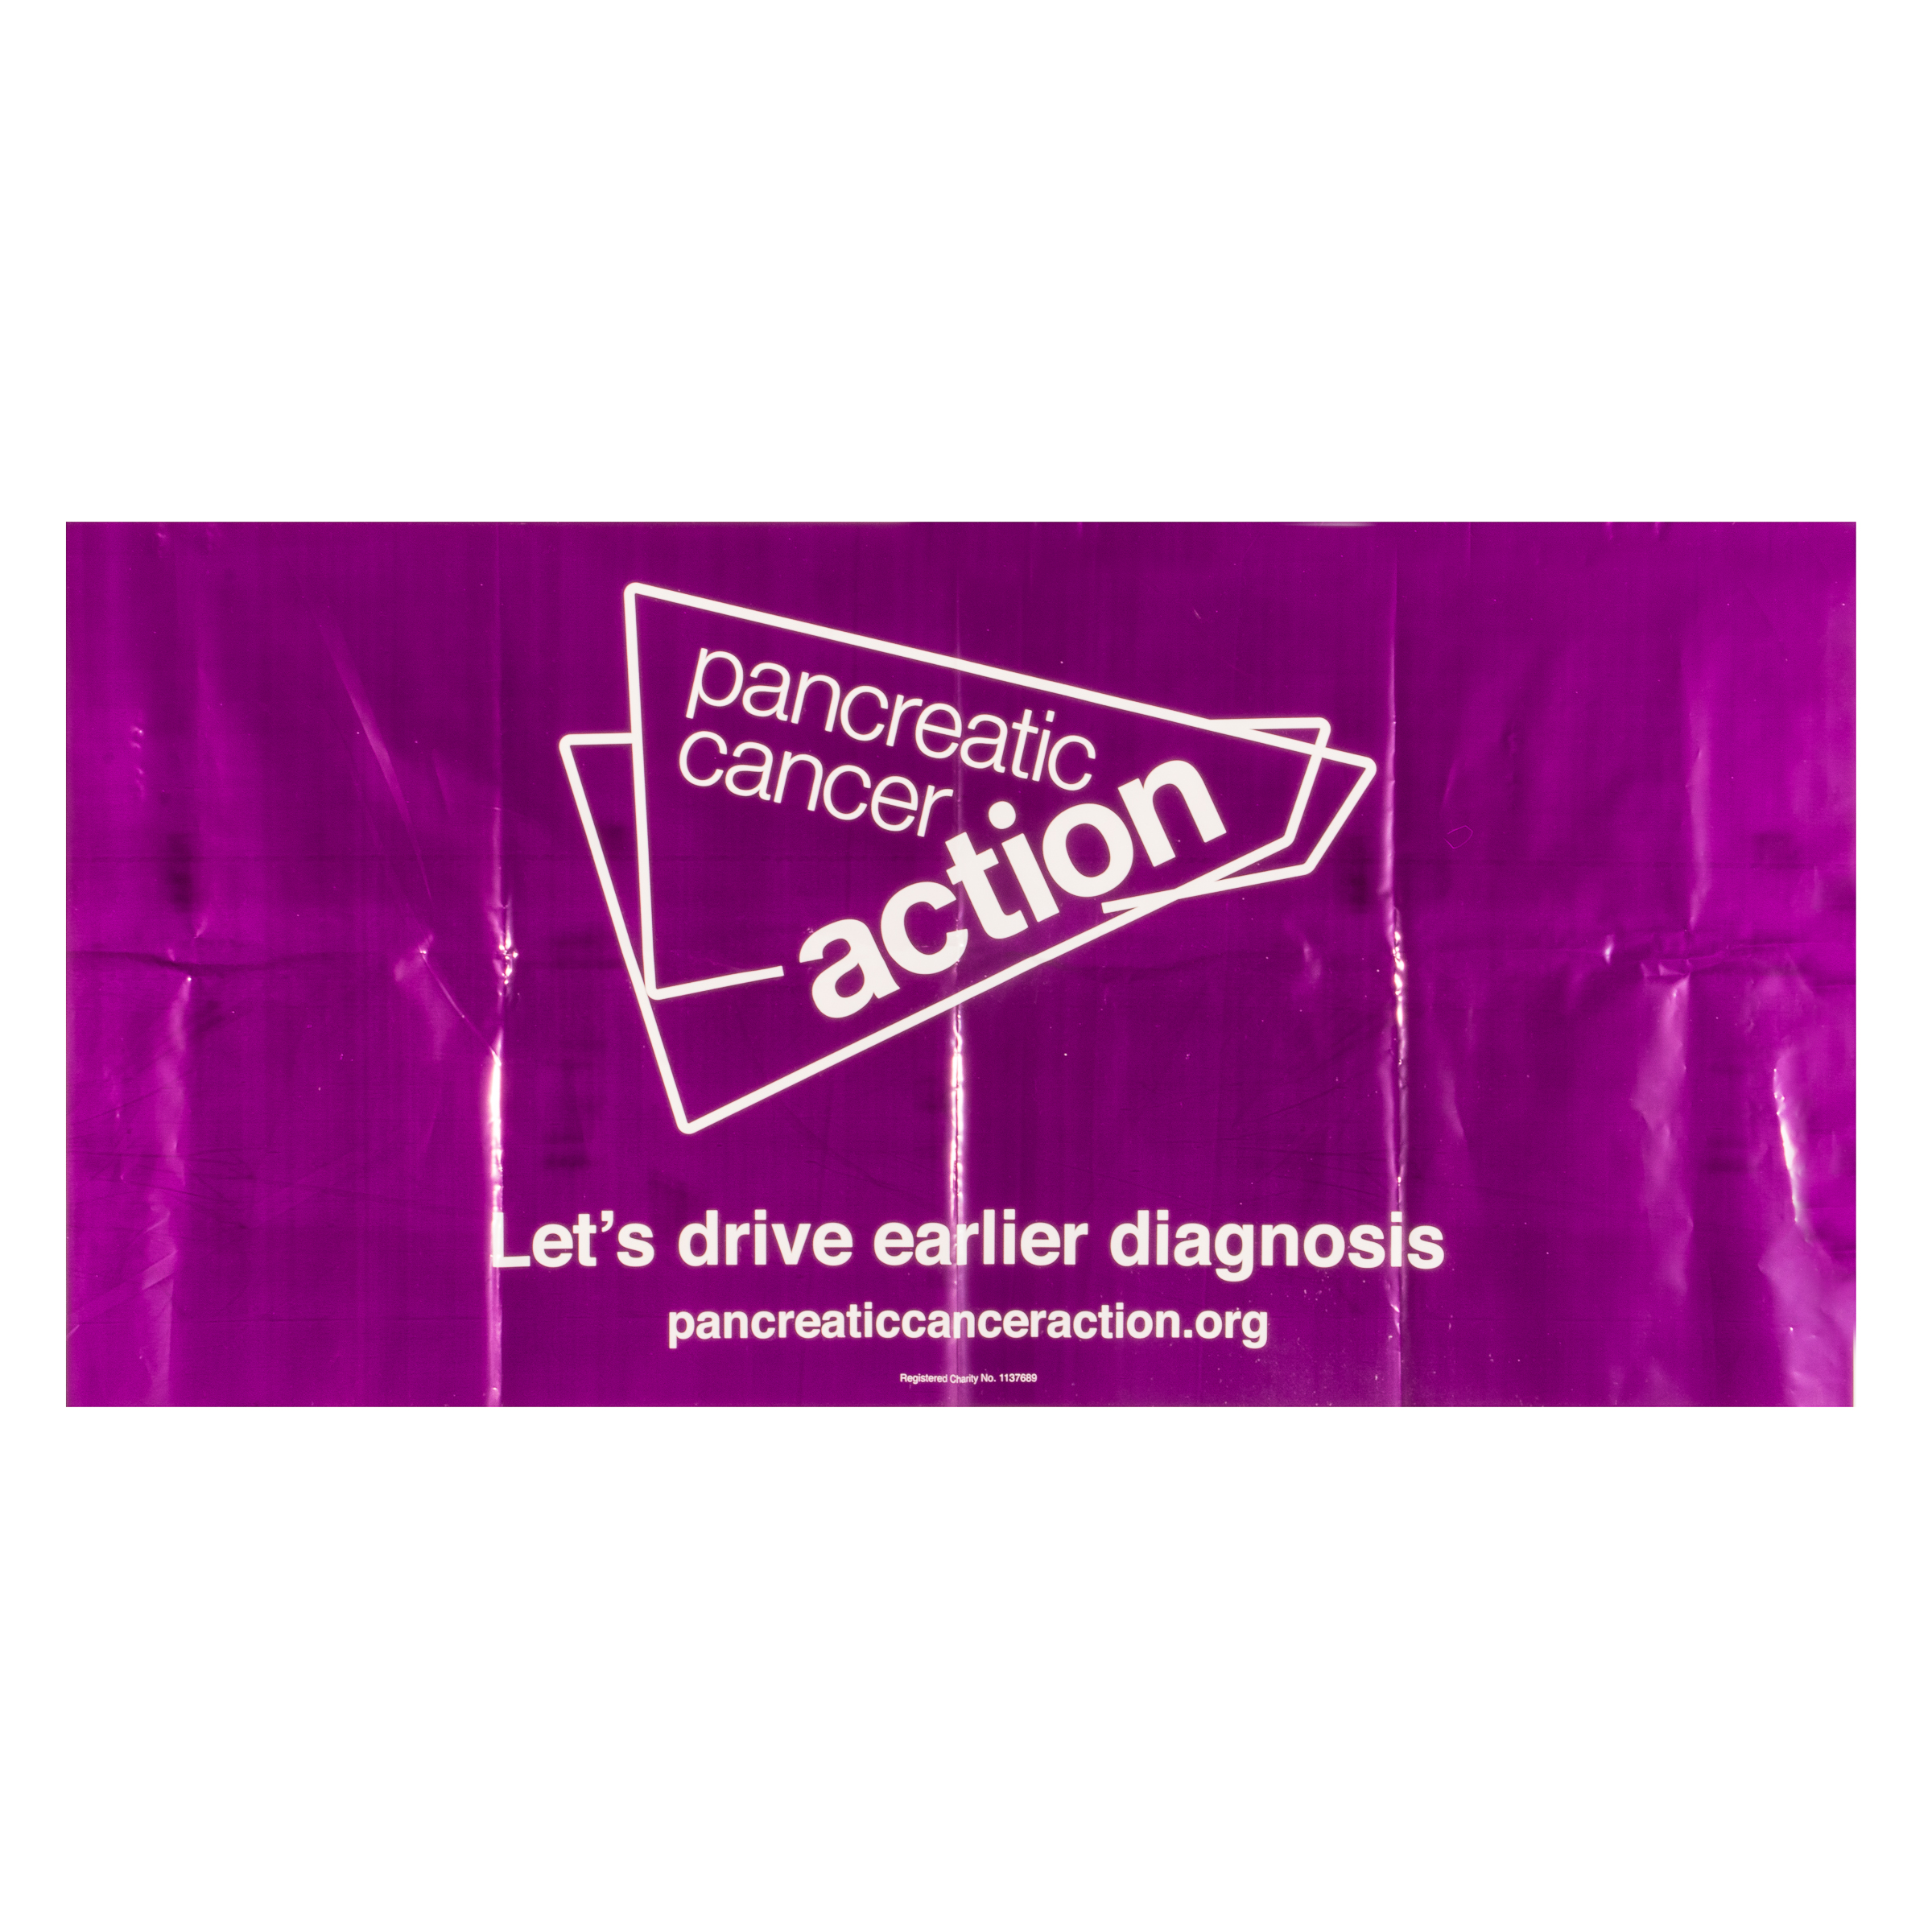 Pancreatic Cancer Action event banner